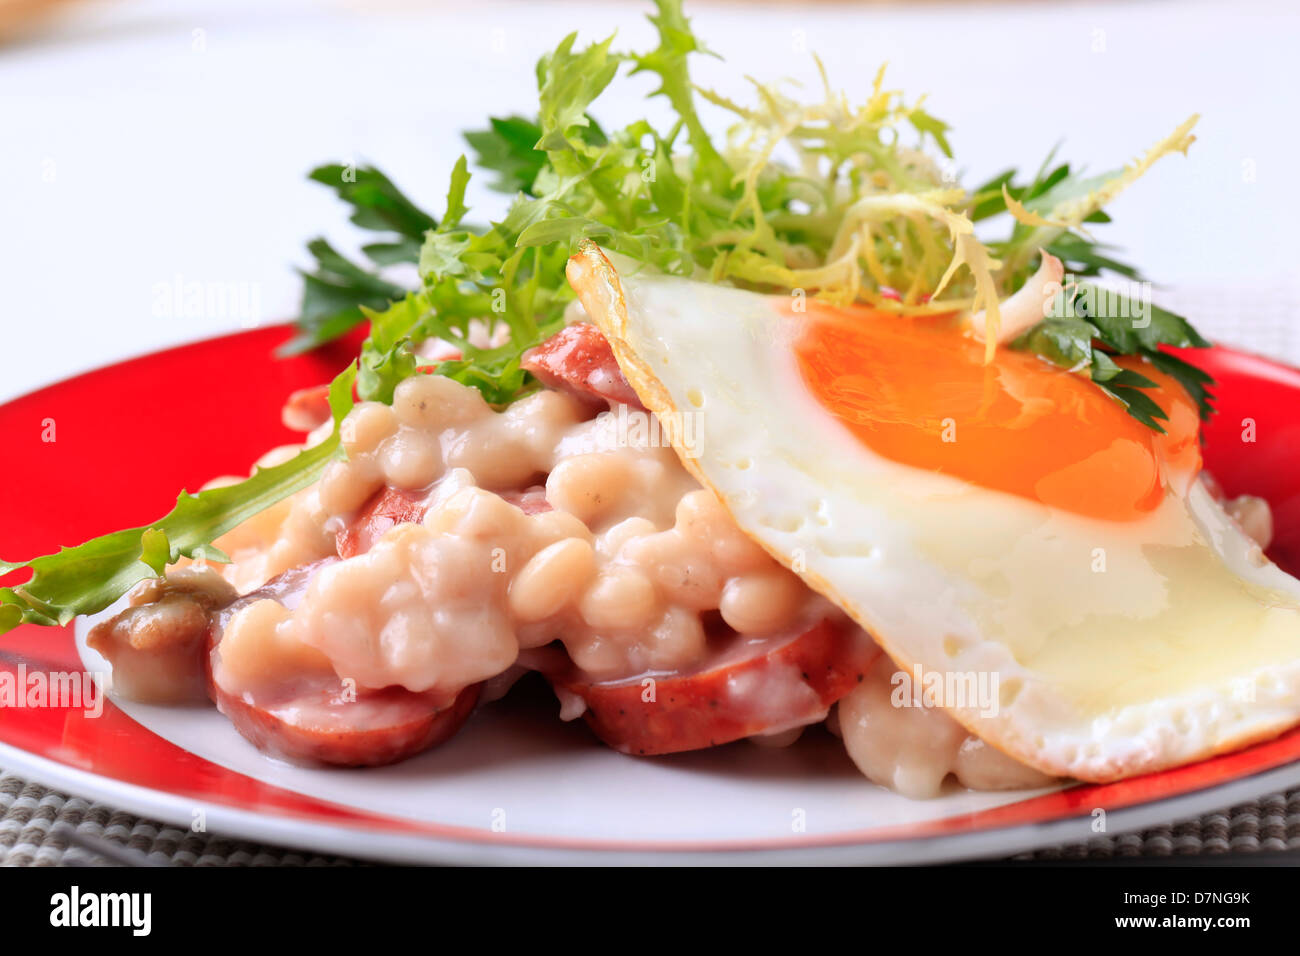 White beans with slices of sausage and fried egg - Stock Image